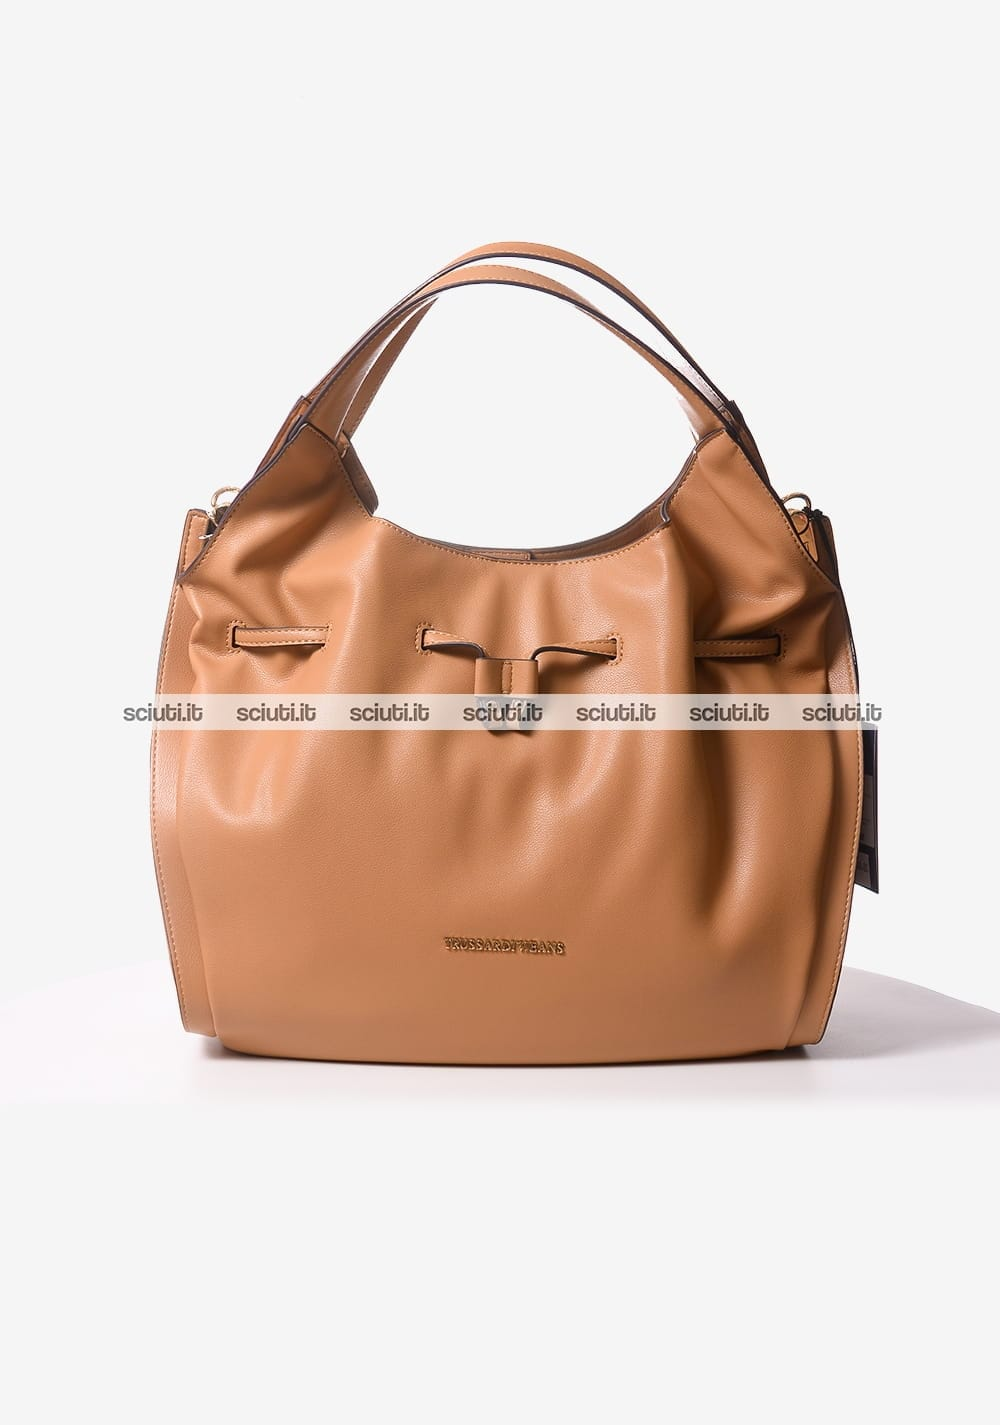 bea671ba4a Borsa secchiello Trussardi jeans donna Bellflower marrone | Sciuti.it